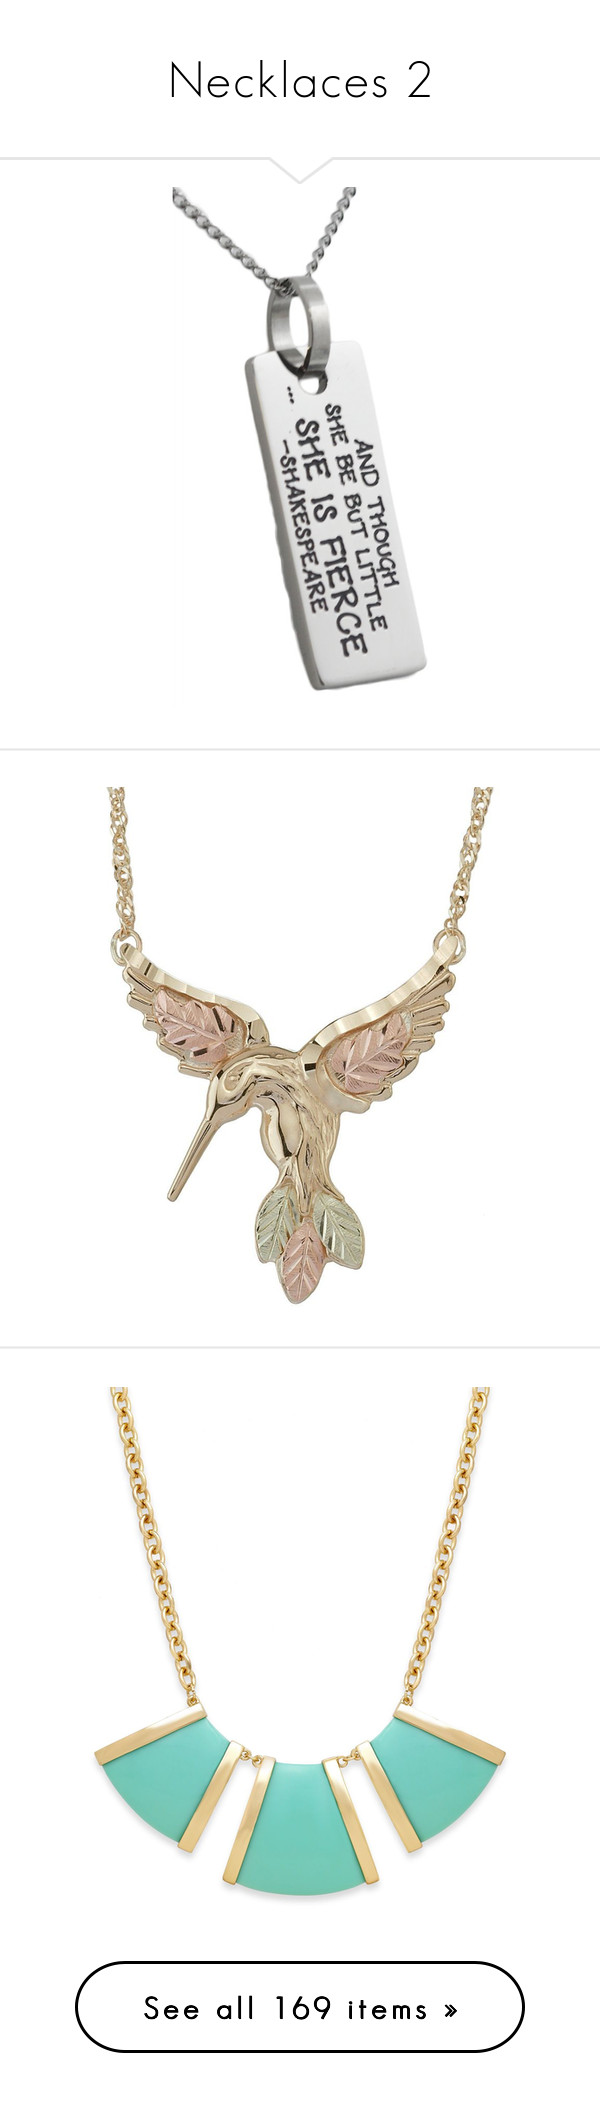 """""""Necklaces 2"""" by elli-jane-xox ❤ liked on Polyvore featuring jewelry, necklaces, stainless steel pendant necklace, stainless steel jewelry, pendant necklace, pendant jewelry, stainless steel pendants, gold necklace, multicolor necklace and gold leaf necklace"""